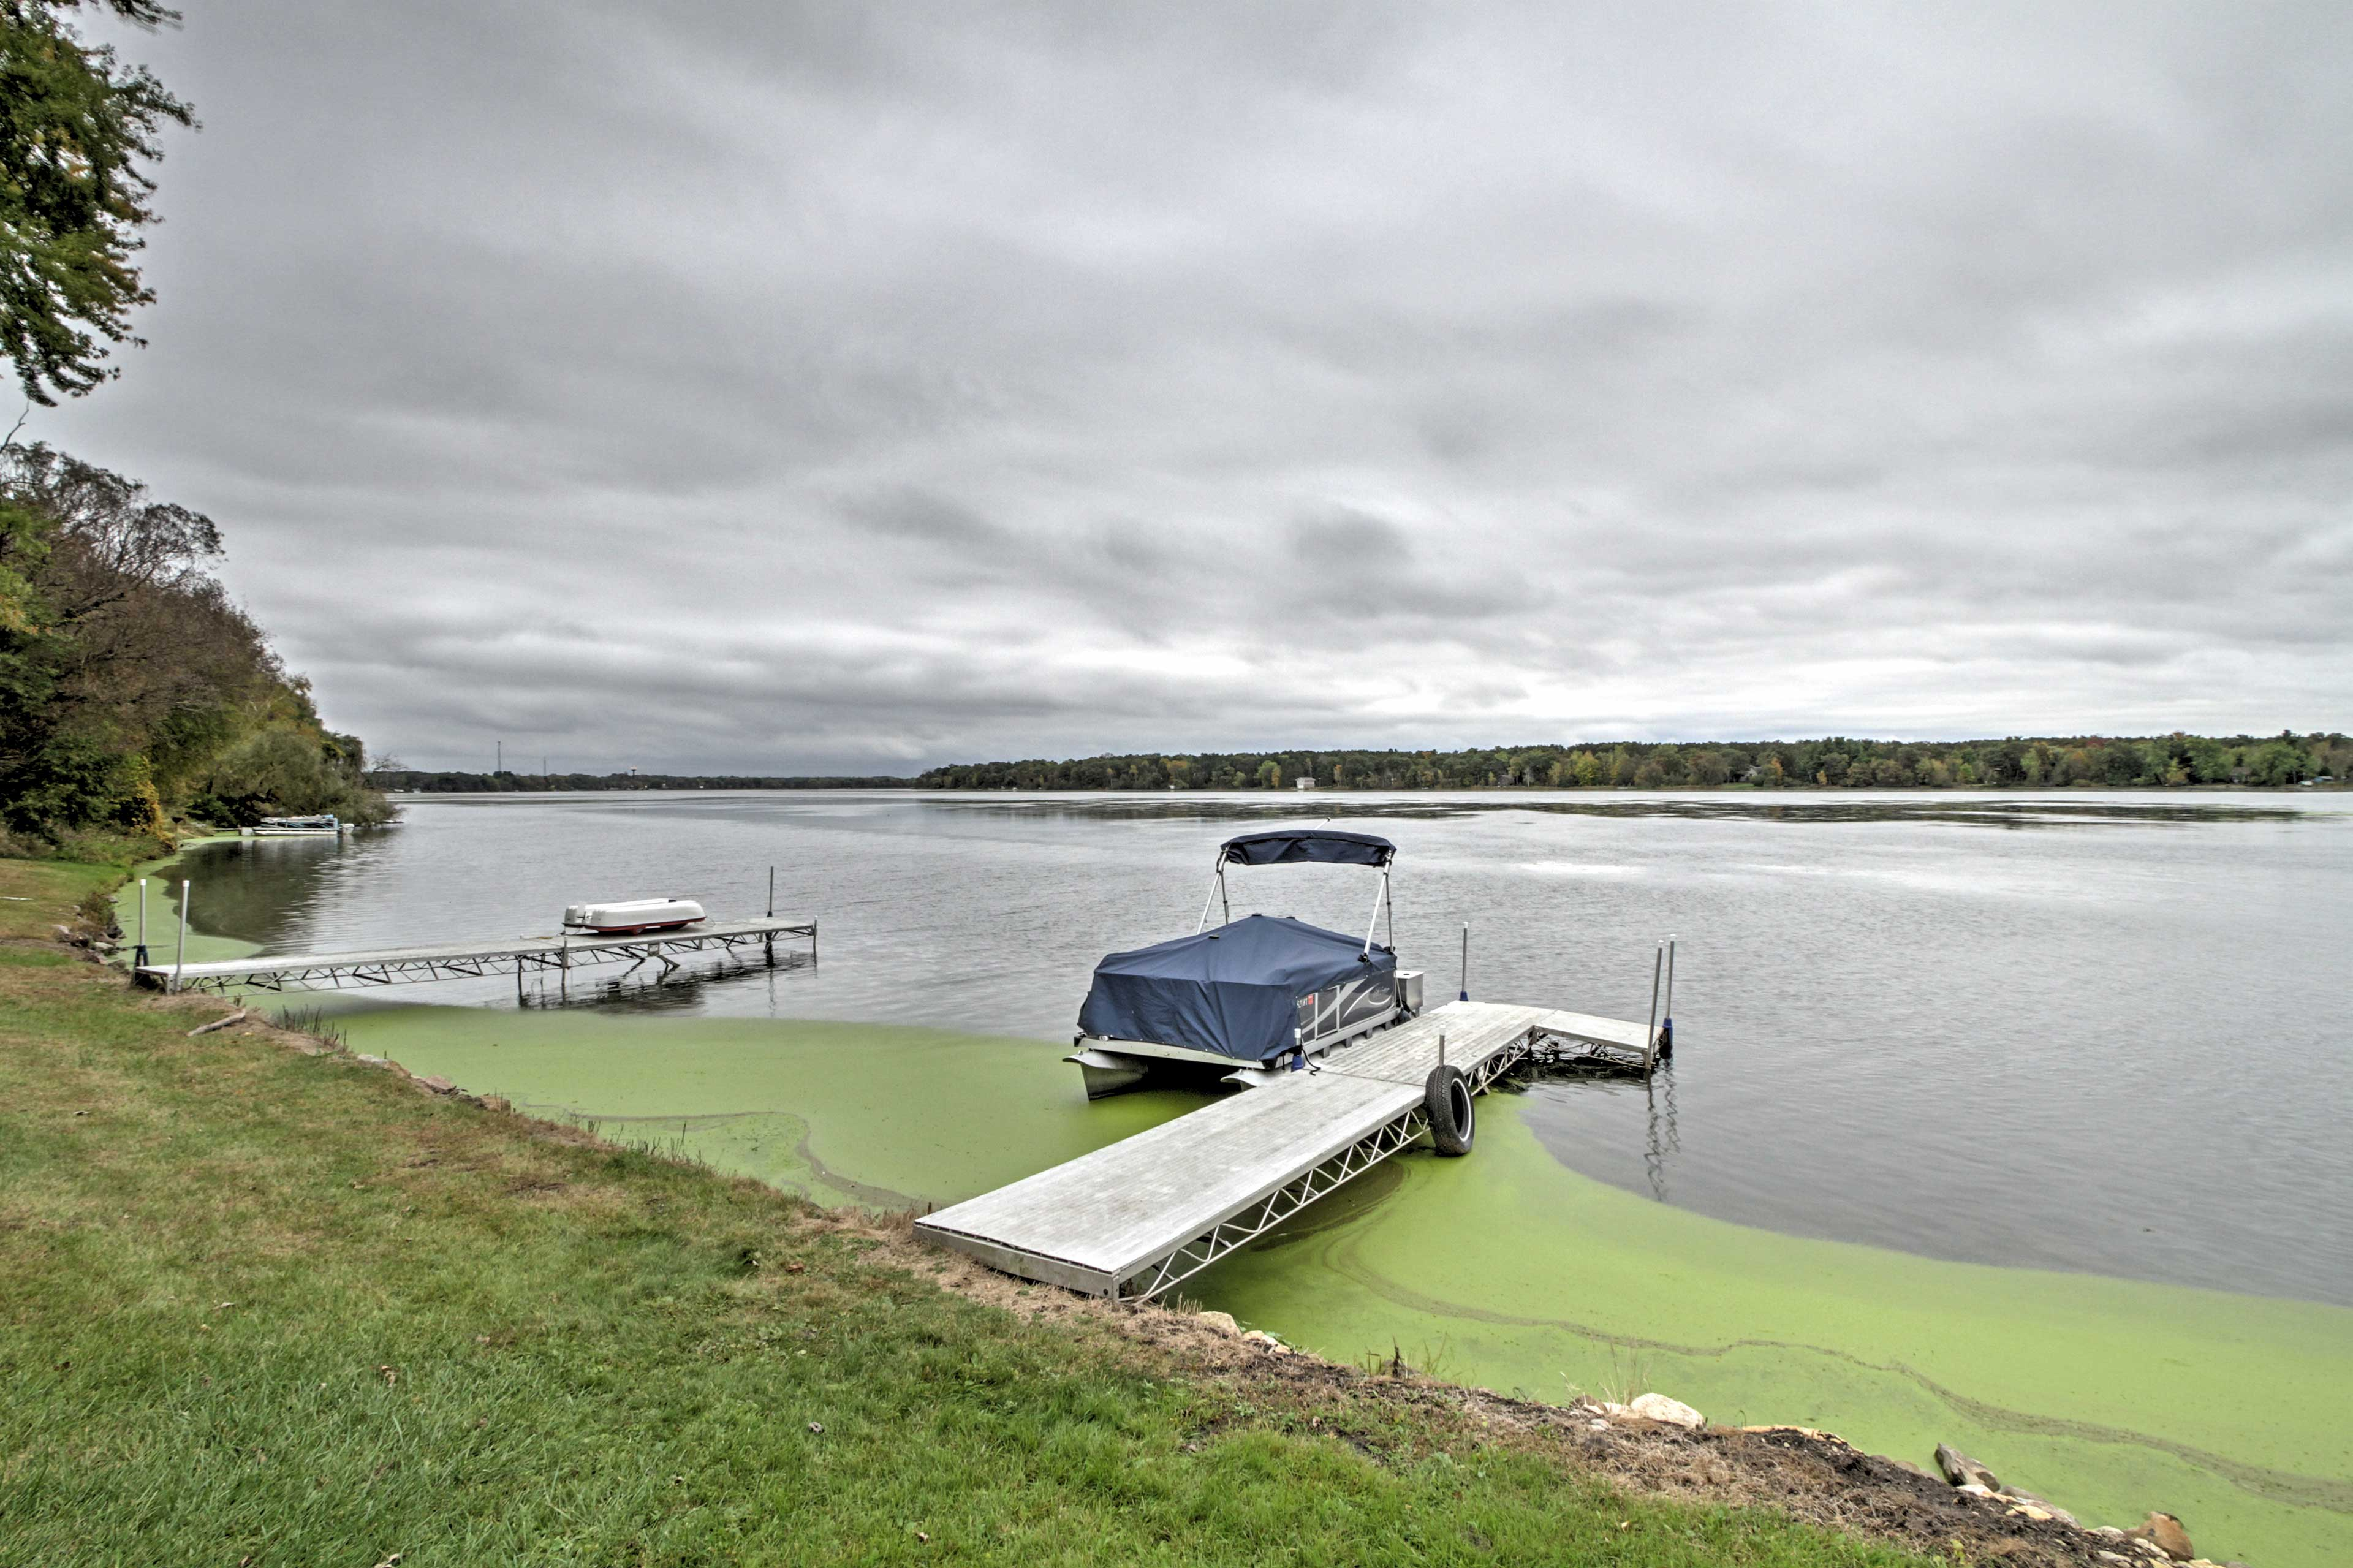 The dock is a great swim platform and also provides parking for your boat.